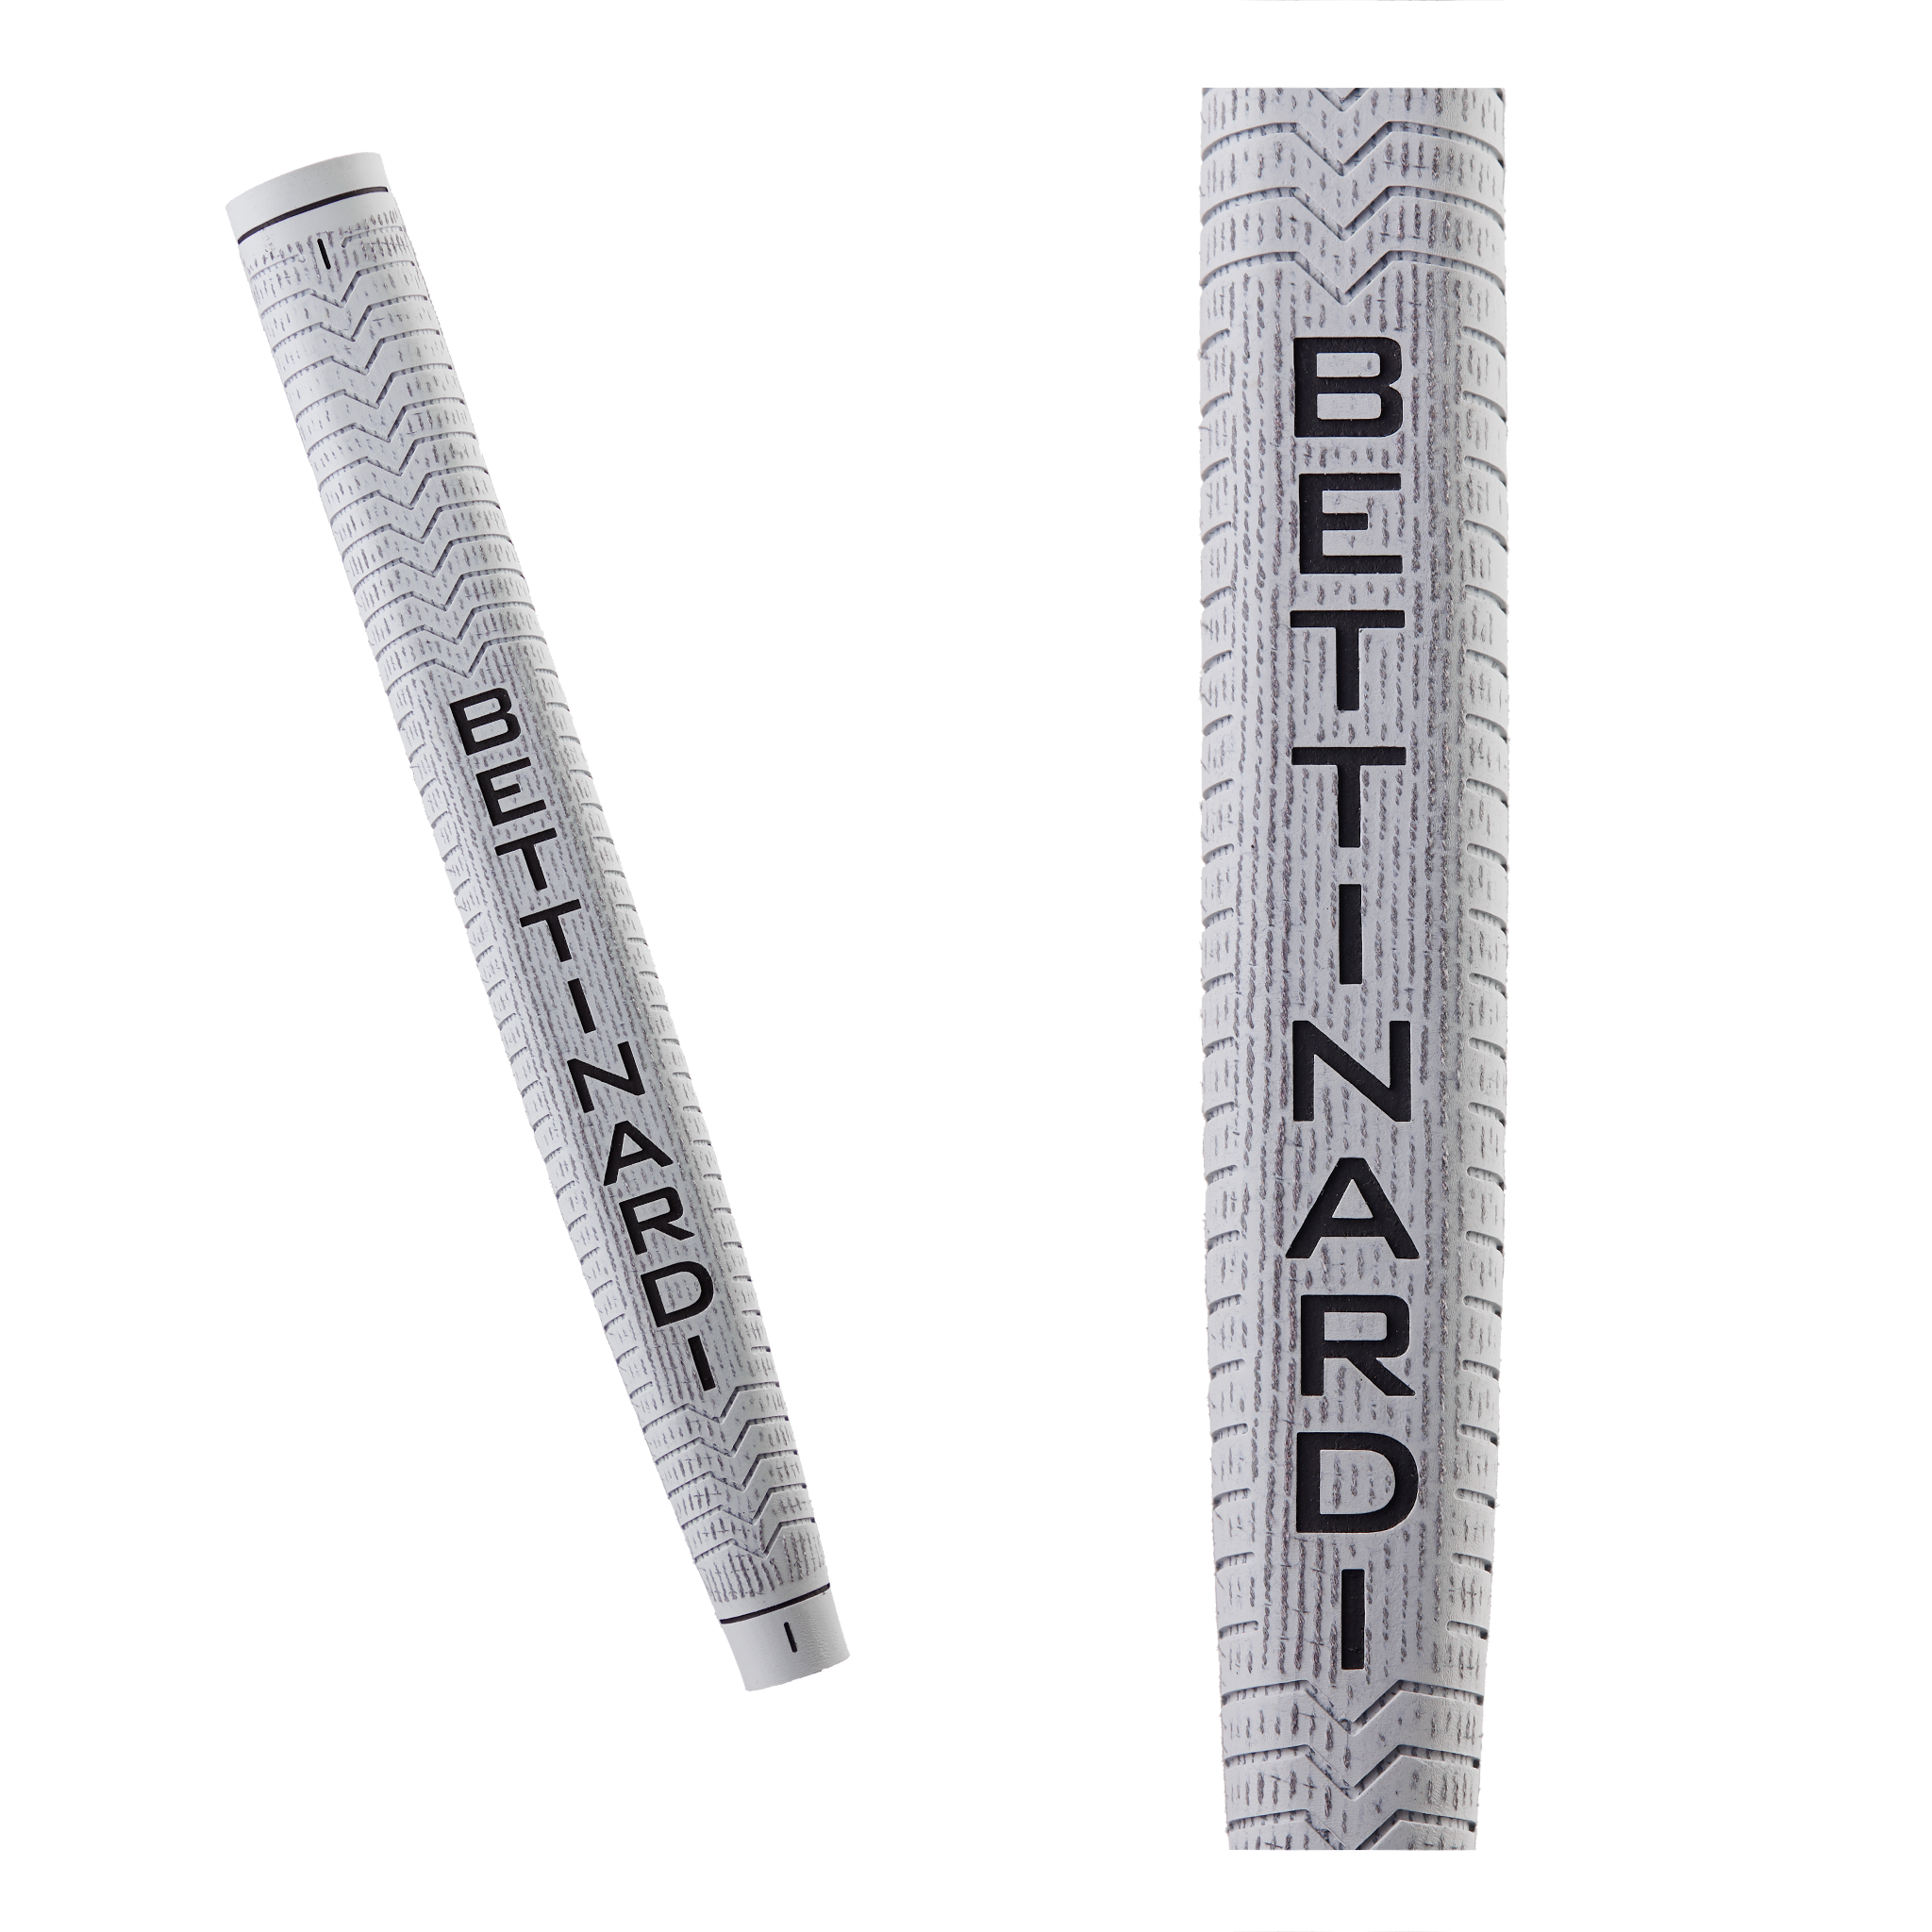 Light Grey Bettinardi Deep Etched Putter Grip (Jumbo)